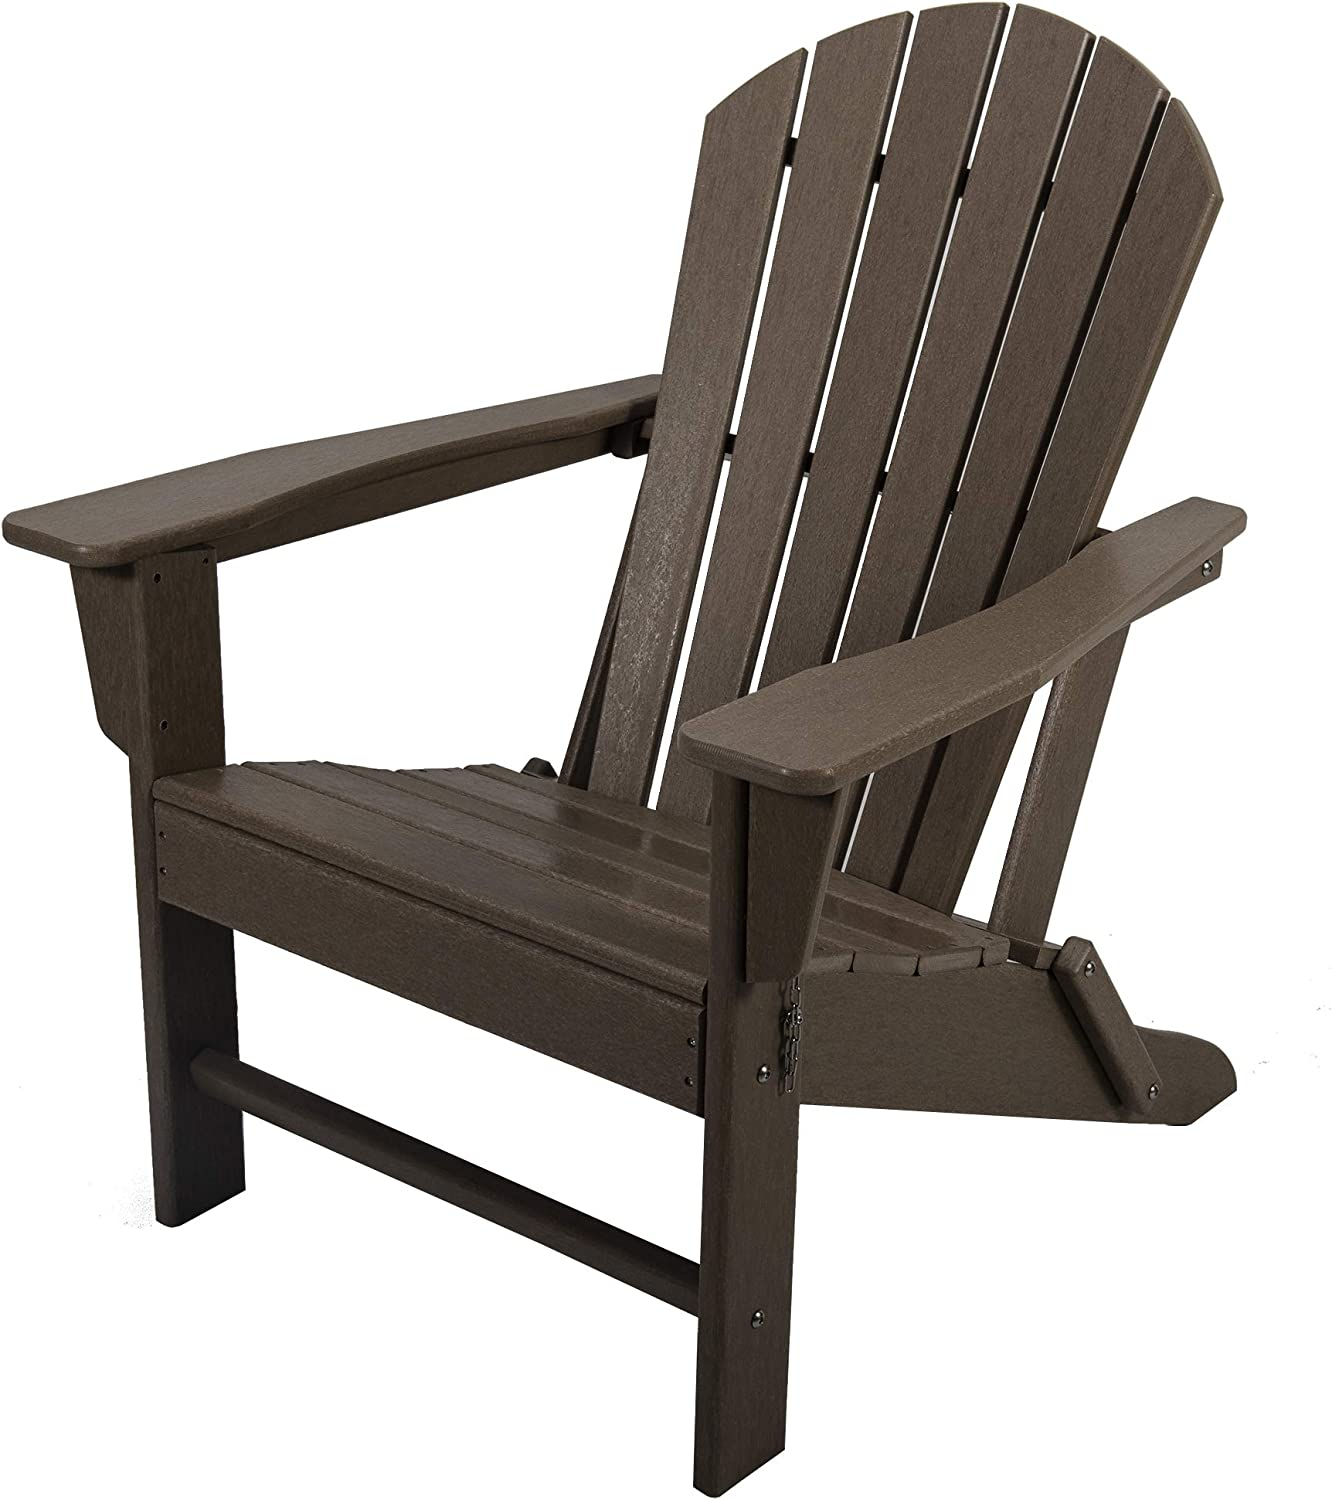 AsterOutdoor Folding Plastic Adirondack Classic Outdoor Composite Chair Design-Easy Maintenance & Weather Resistant for Patio Deck Garden, Backyard, Beach, Pool and Fire Pit Seating, Brown